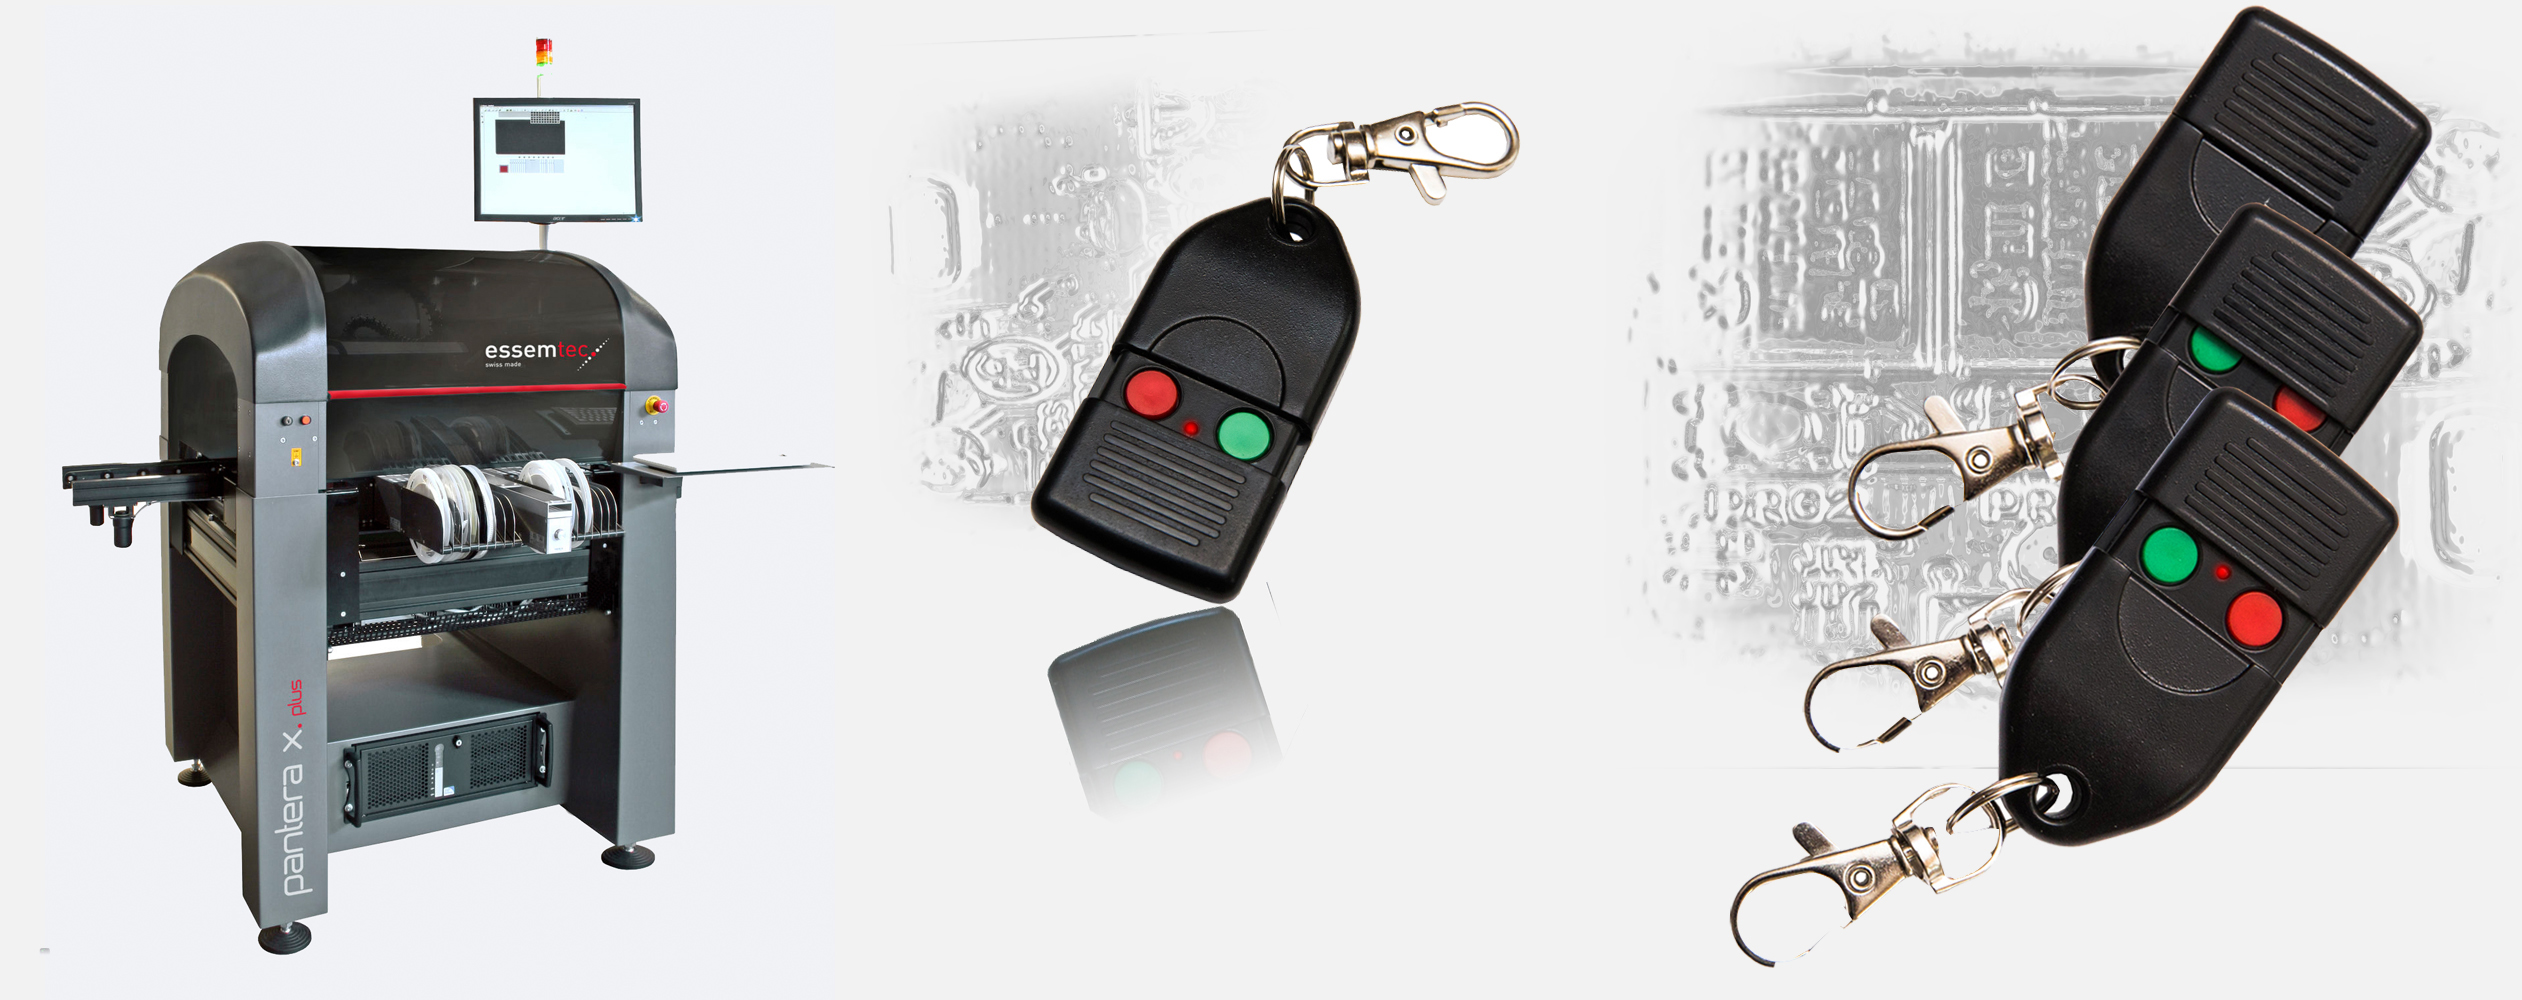 2 CHANNEL KEY FOB TRANSMITTER WITH PUSH OUT/PUSH IN BUTTONS PROTECTIVE COVER